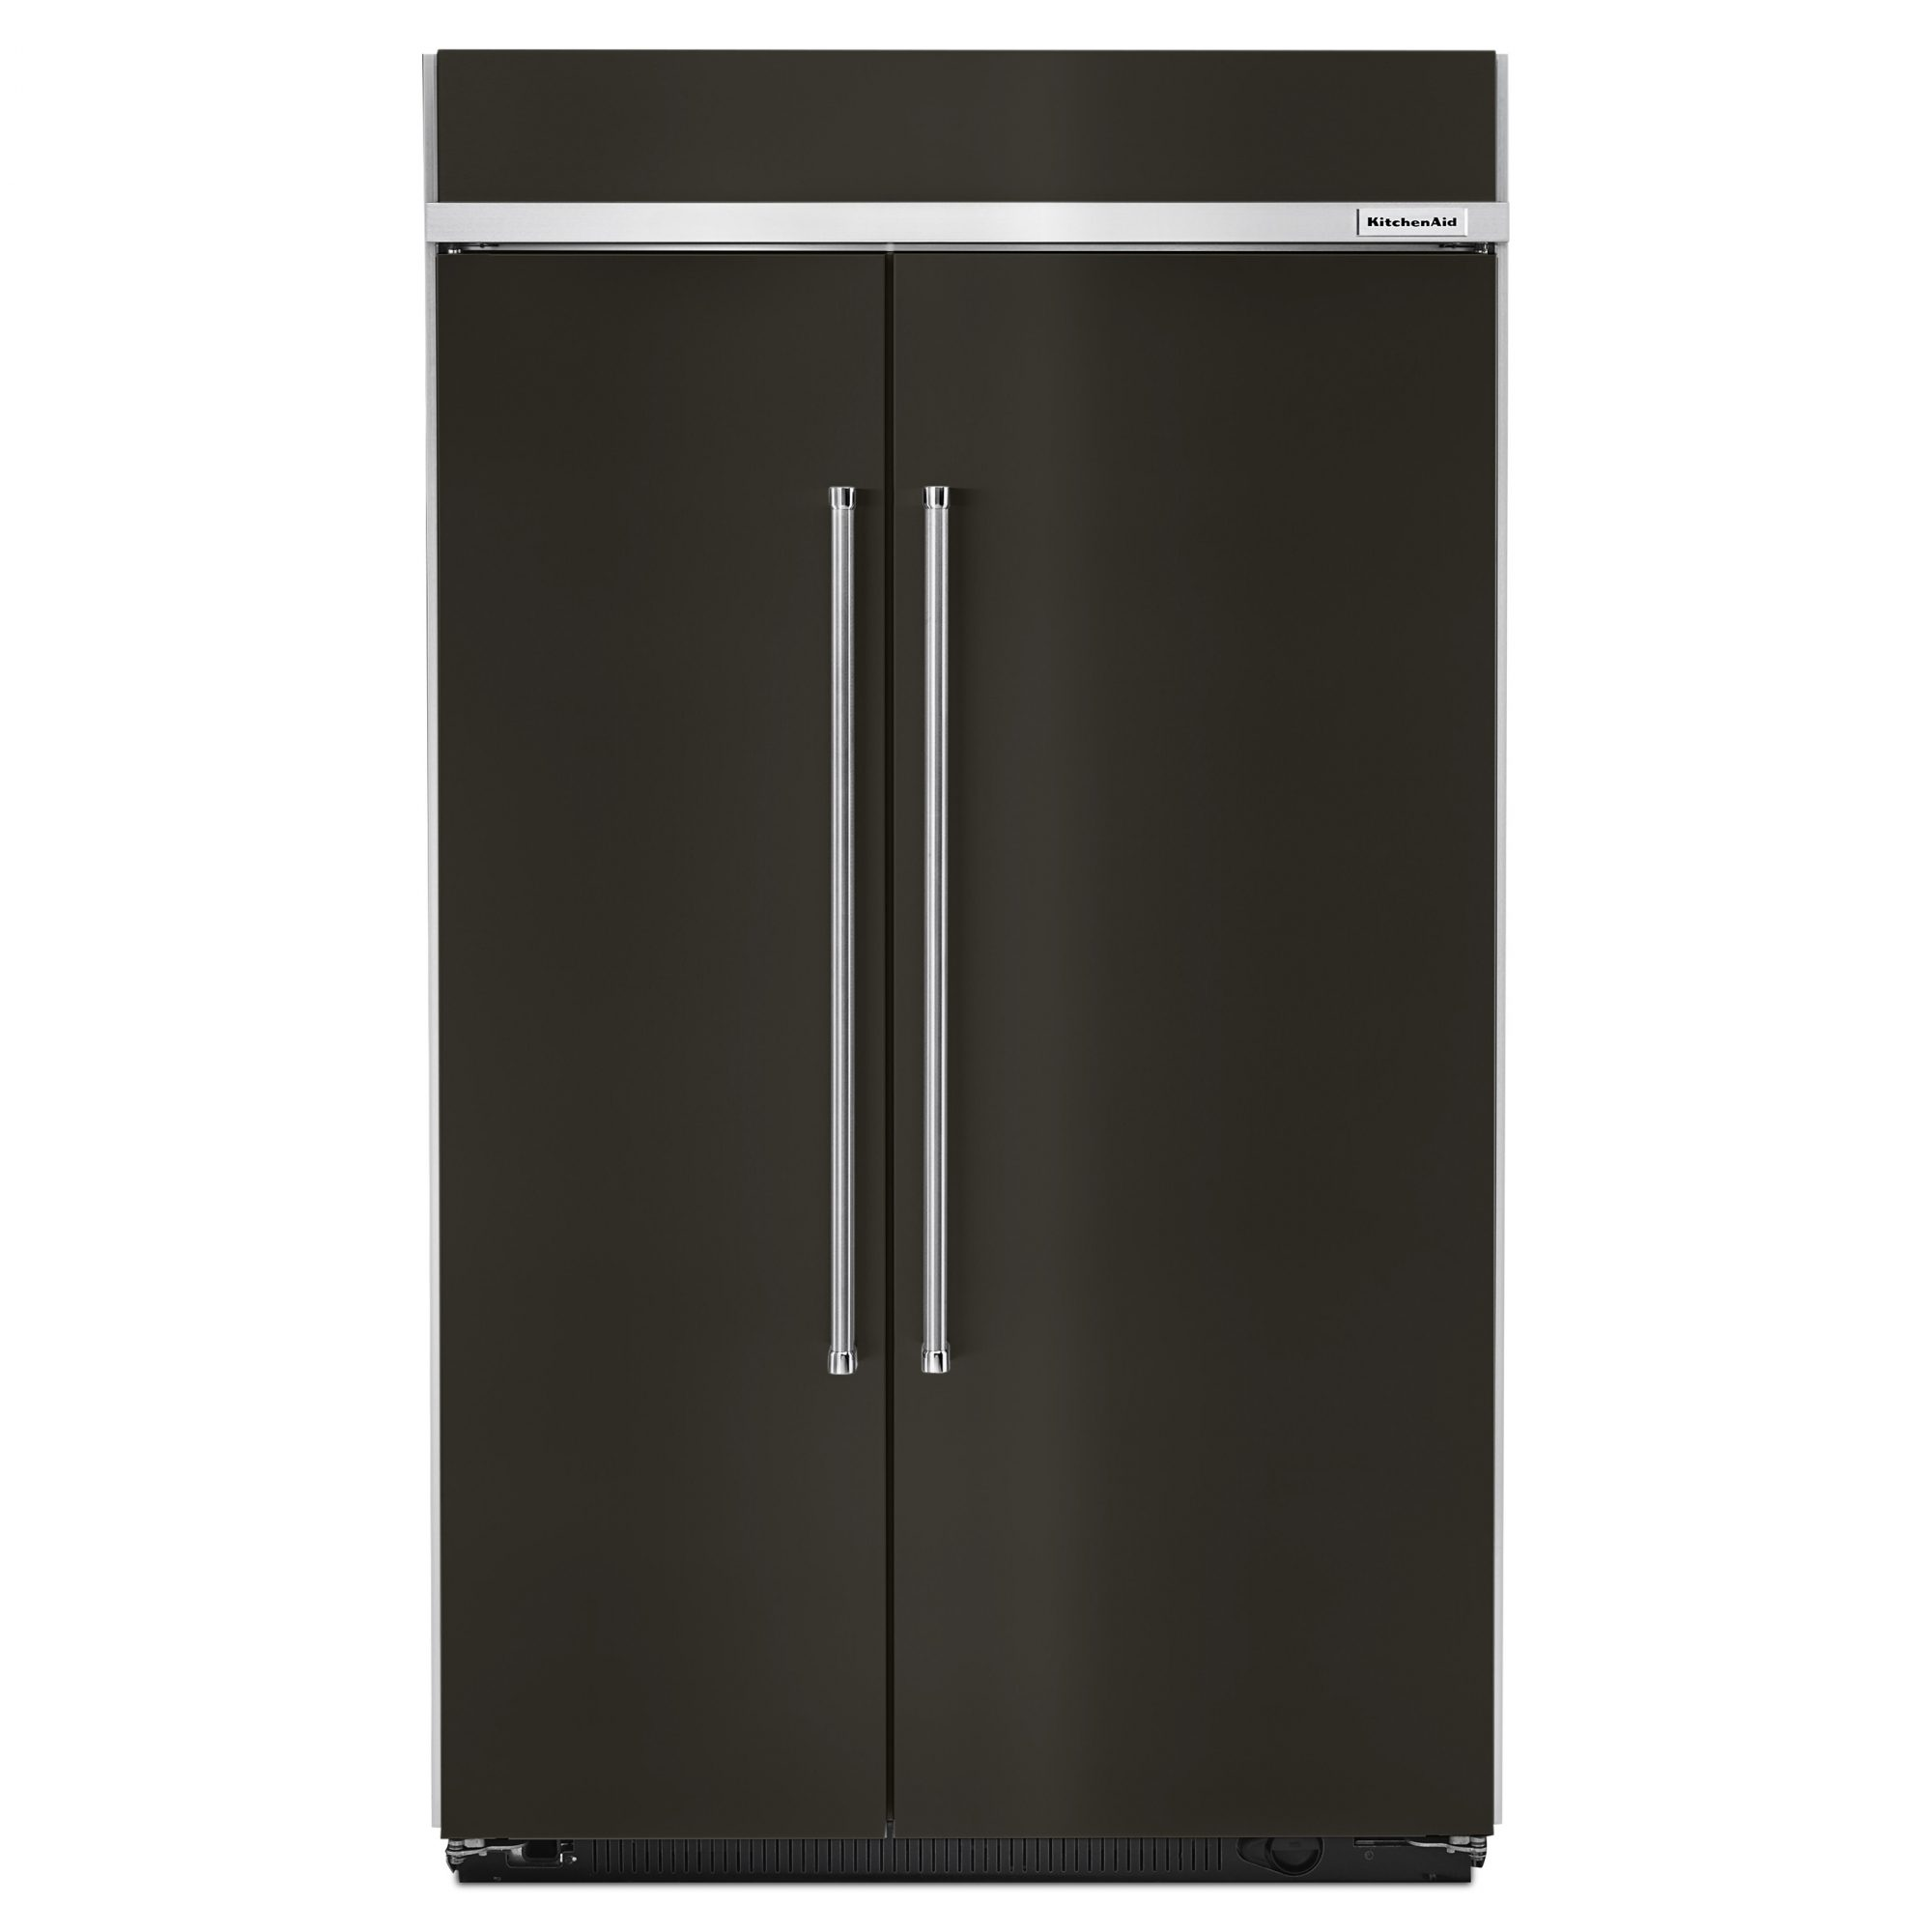 Look At These Beautiful Matte Black Major Appliances: Refrigerator, Ranges,  Ovens And More | Food U0026 Wine